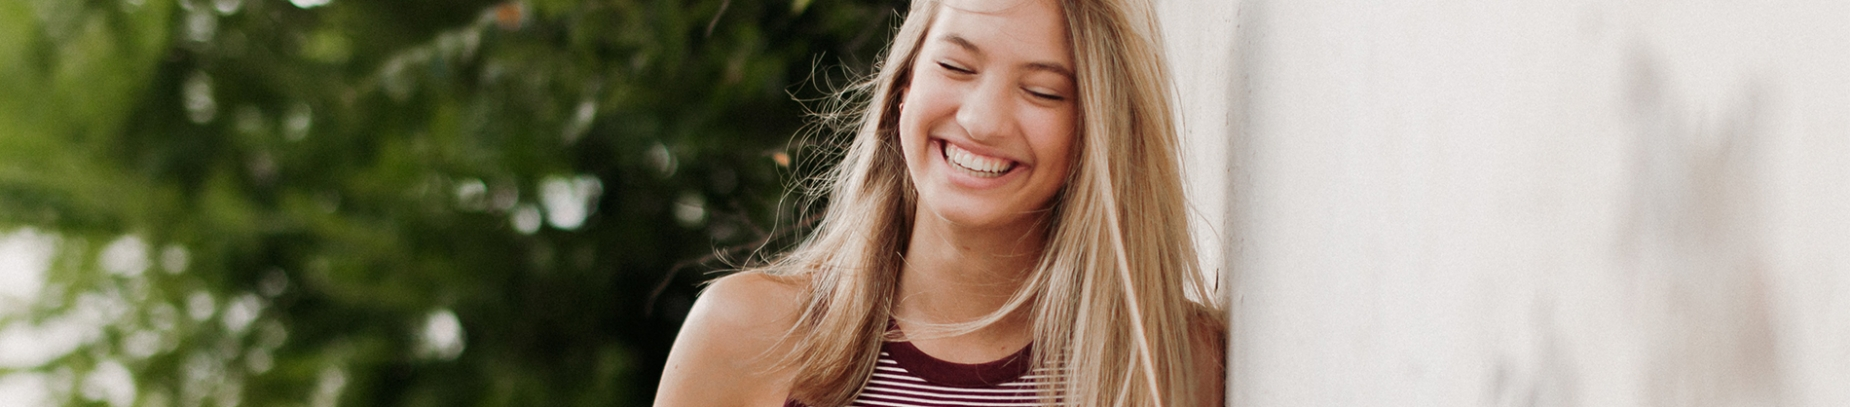 A girl smiling and leaning against a white wall